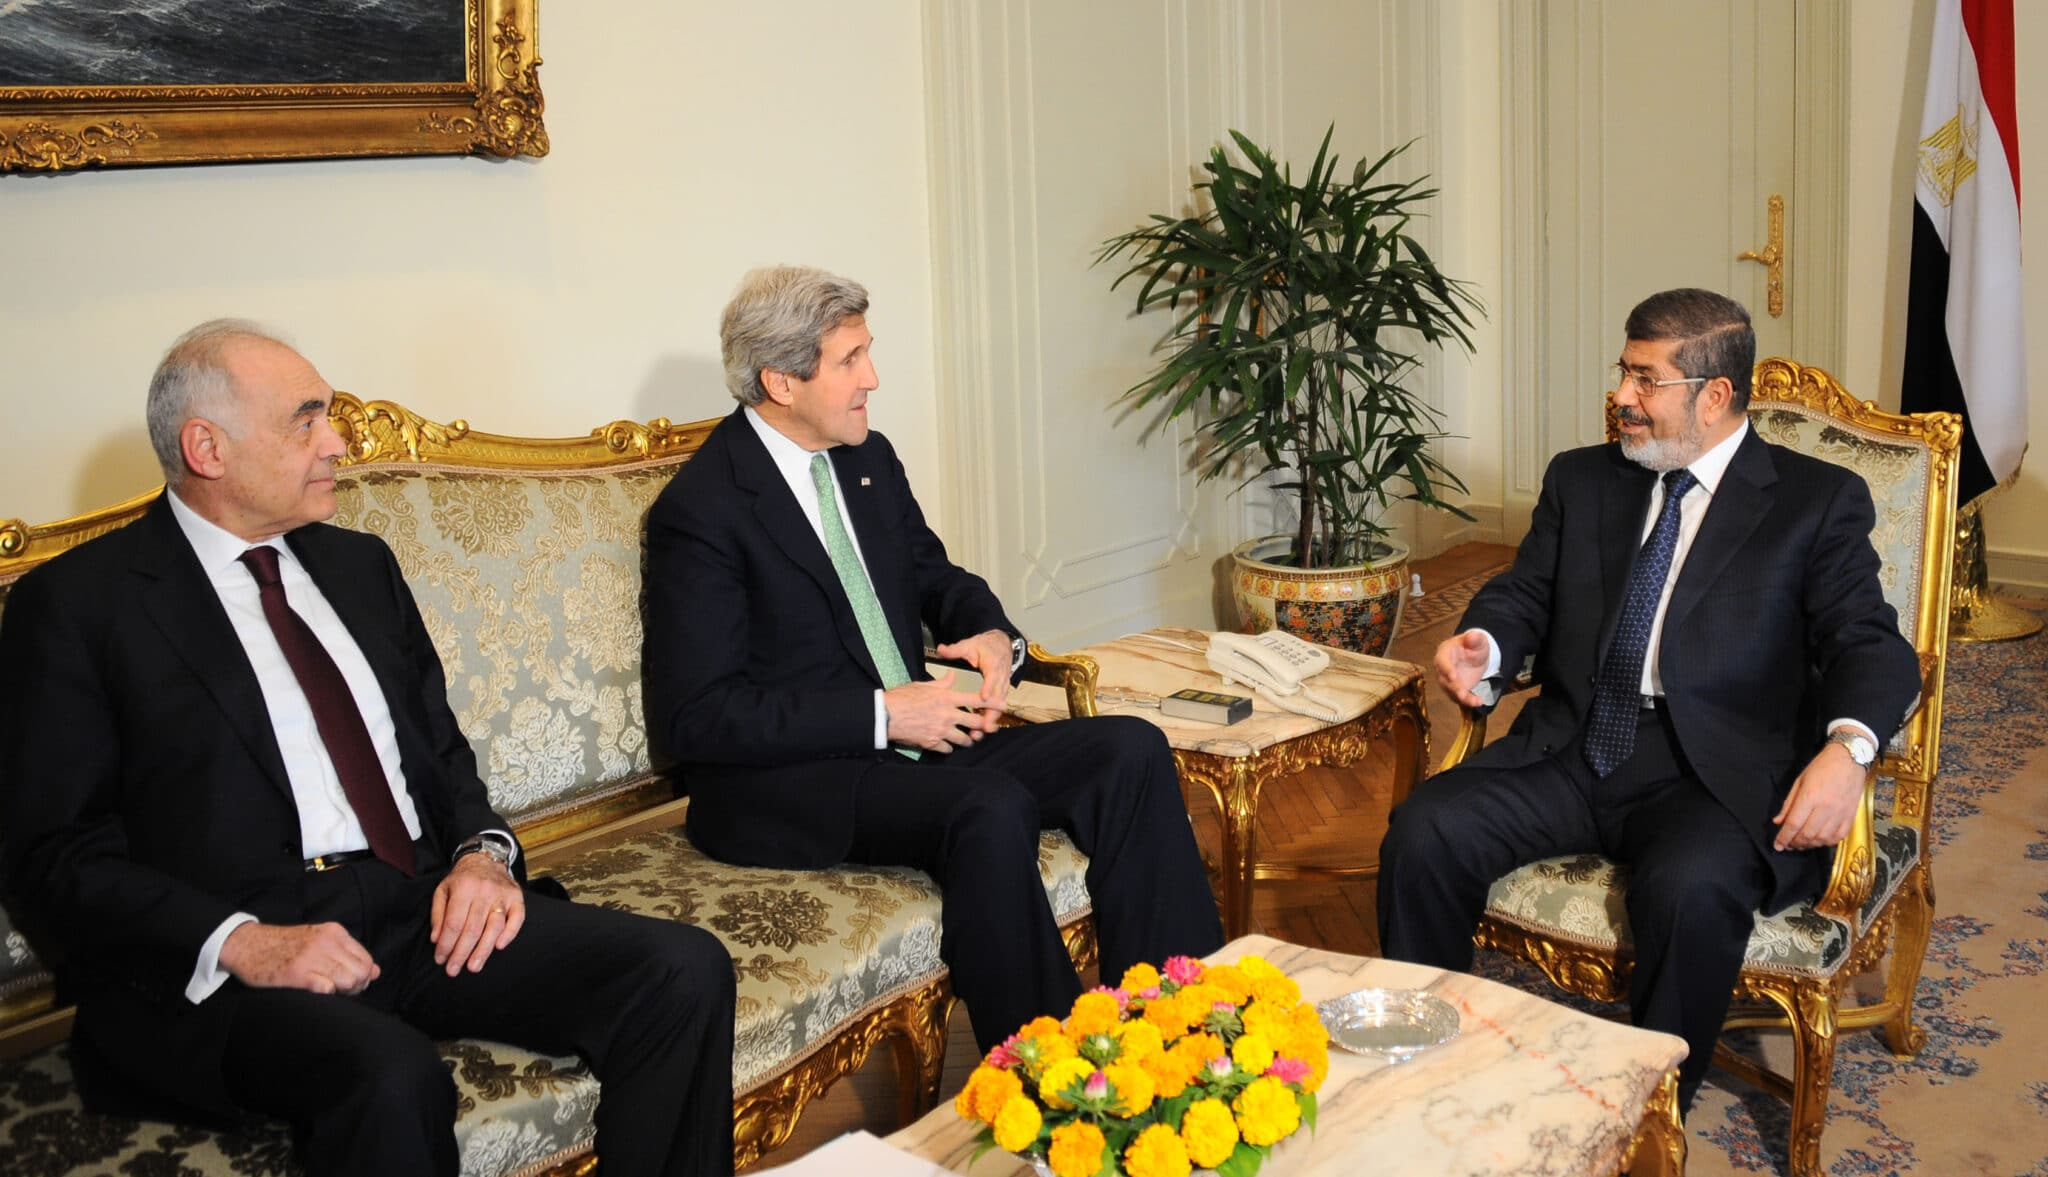 Secretary of state John Kerry and Egyptian president Muhammad Morsi meet at the presidential palace in Cairo.